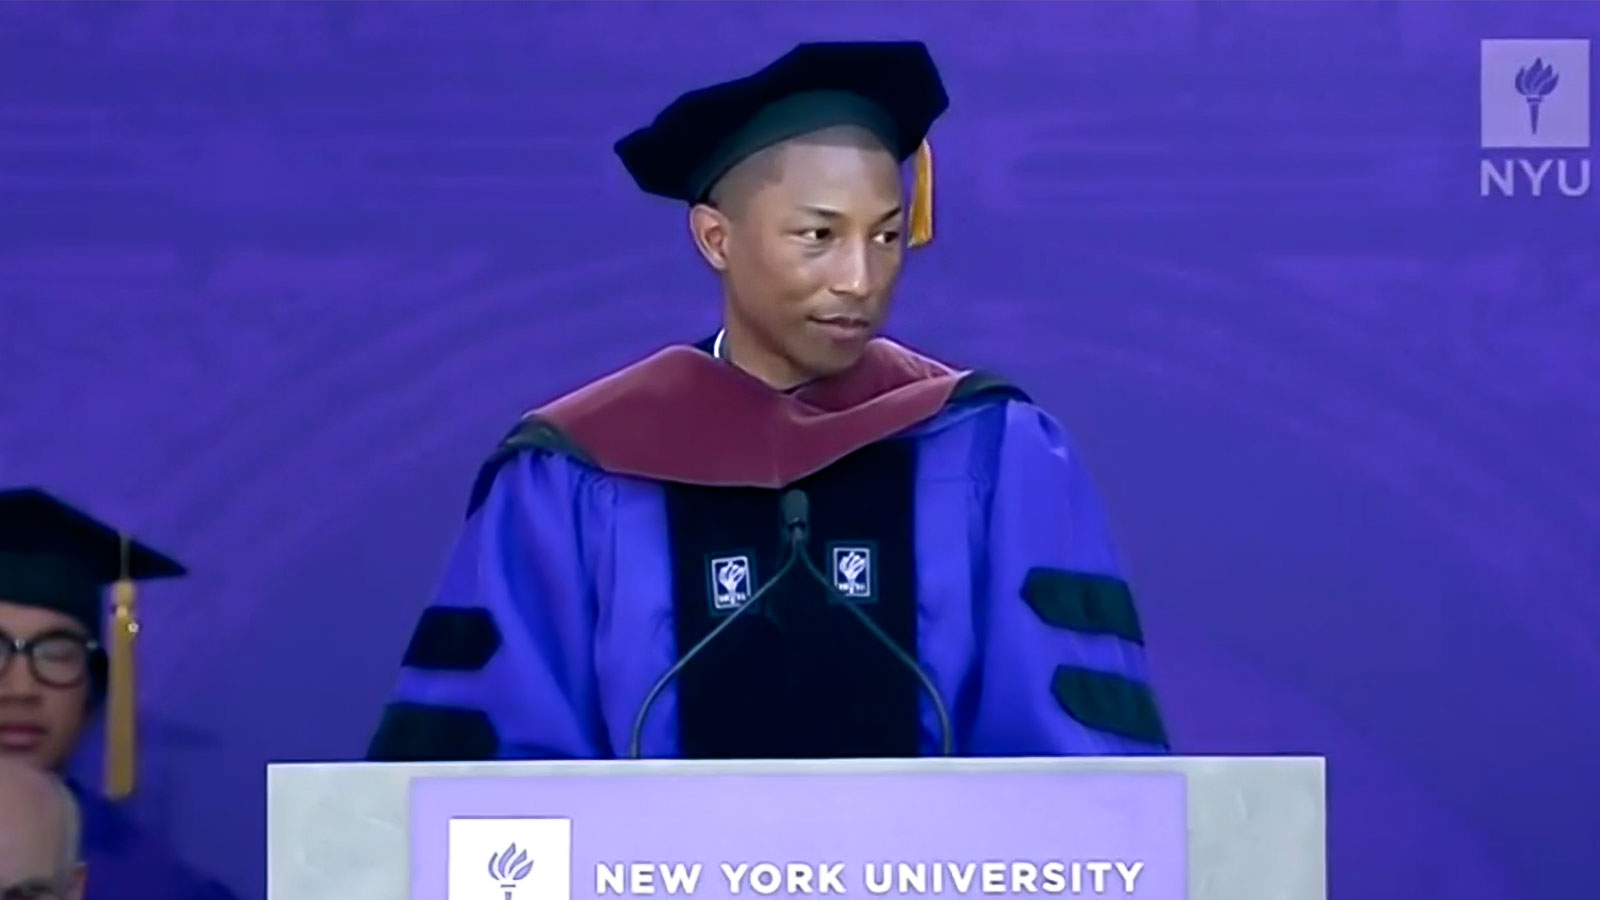 Pharrell Williams tells grads the secret of motivation: 'Serve humanity'